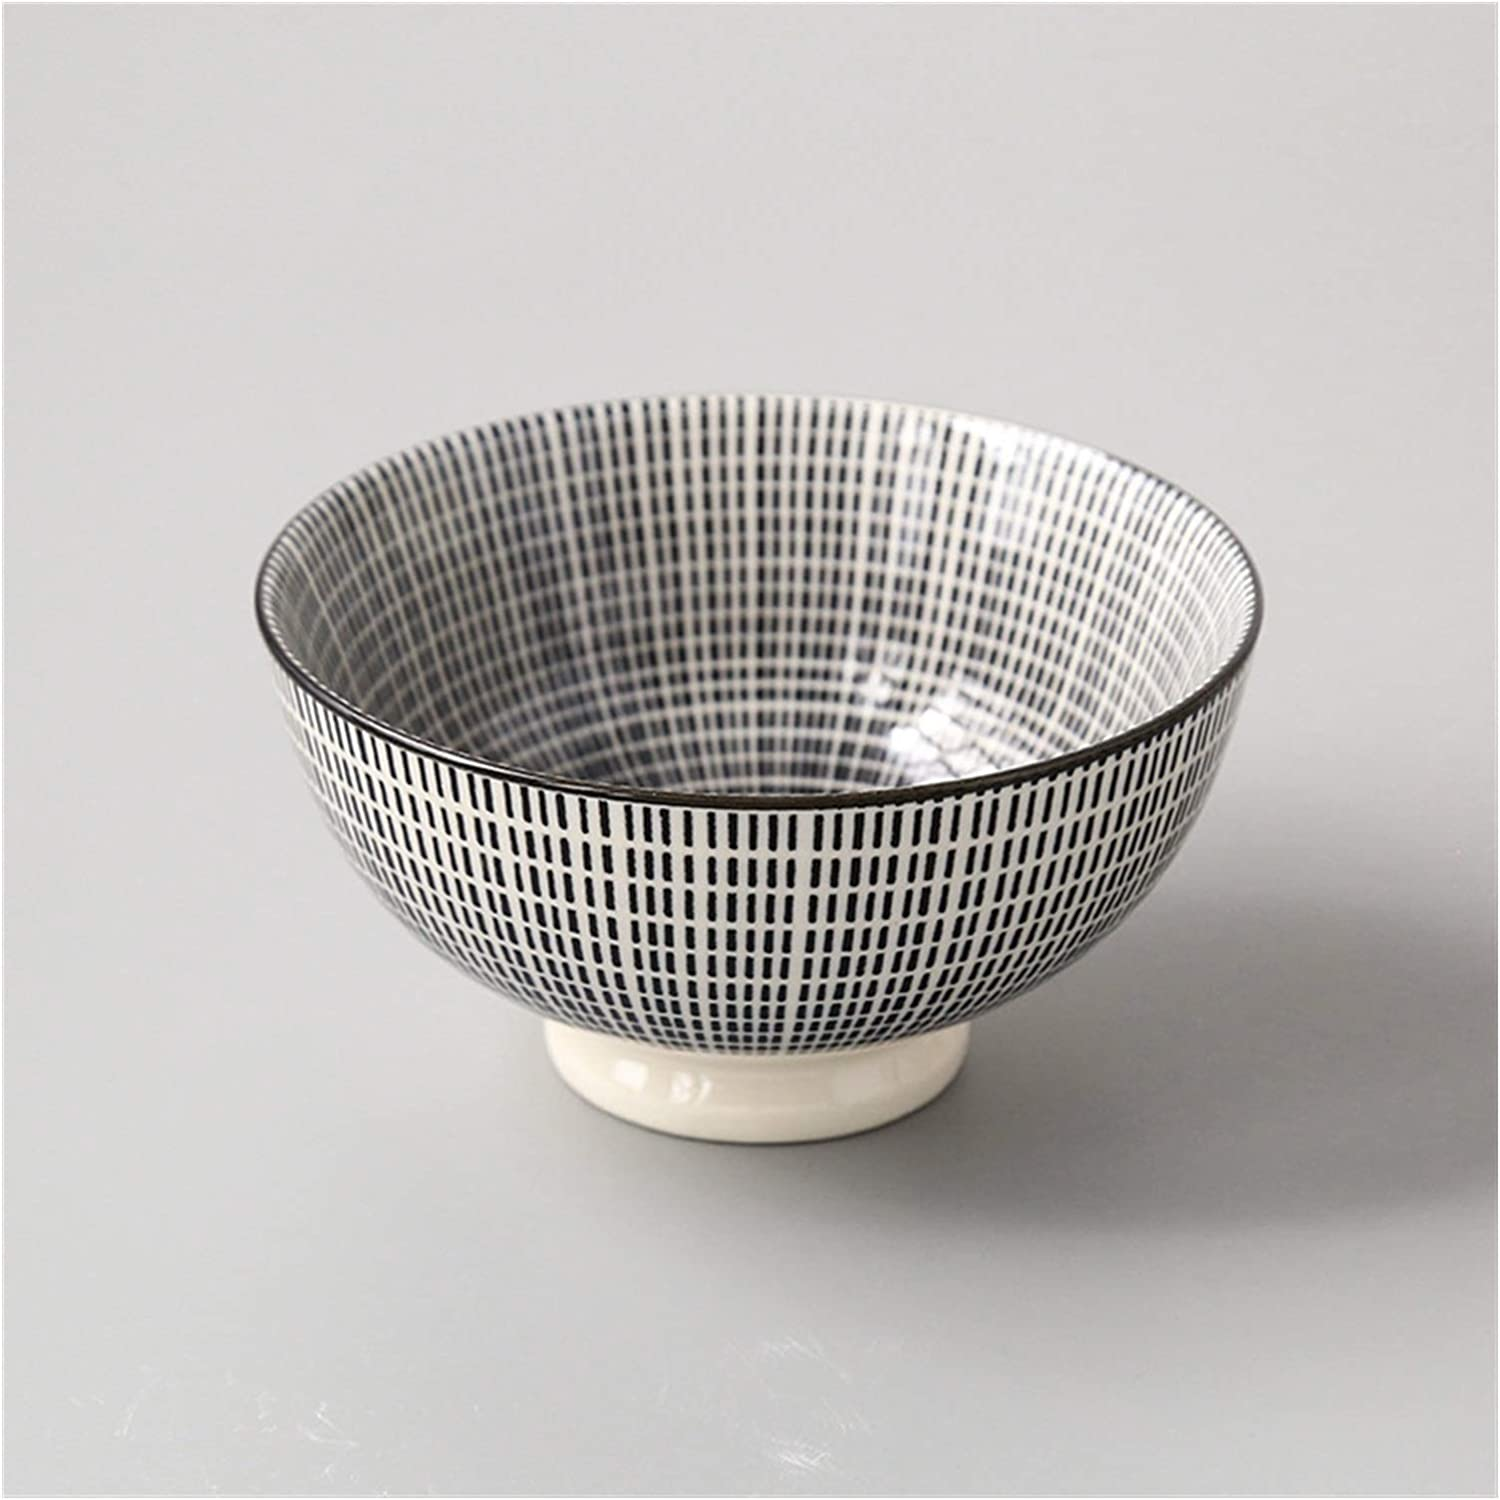 Popular products Vintage Ceramic Bowls Bowl Household Nordic Sale SALE% OFF Rice Cr